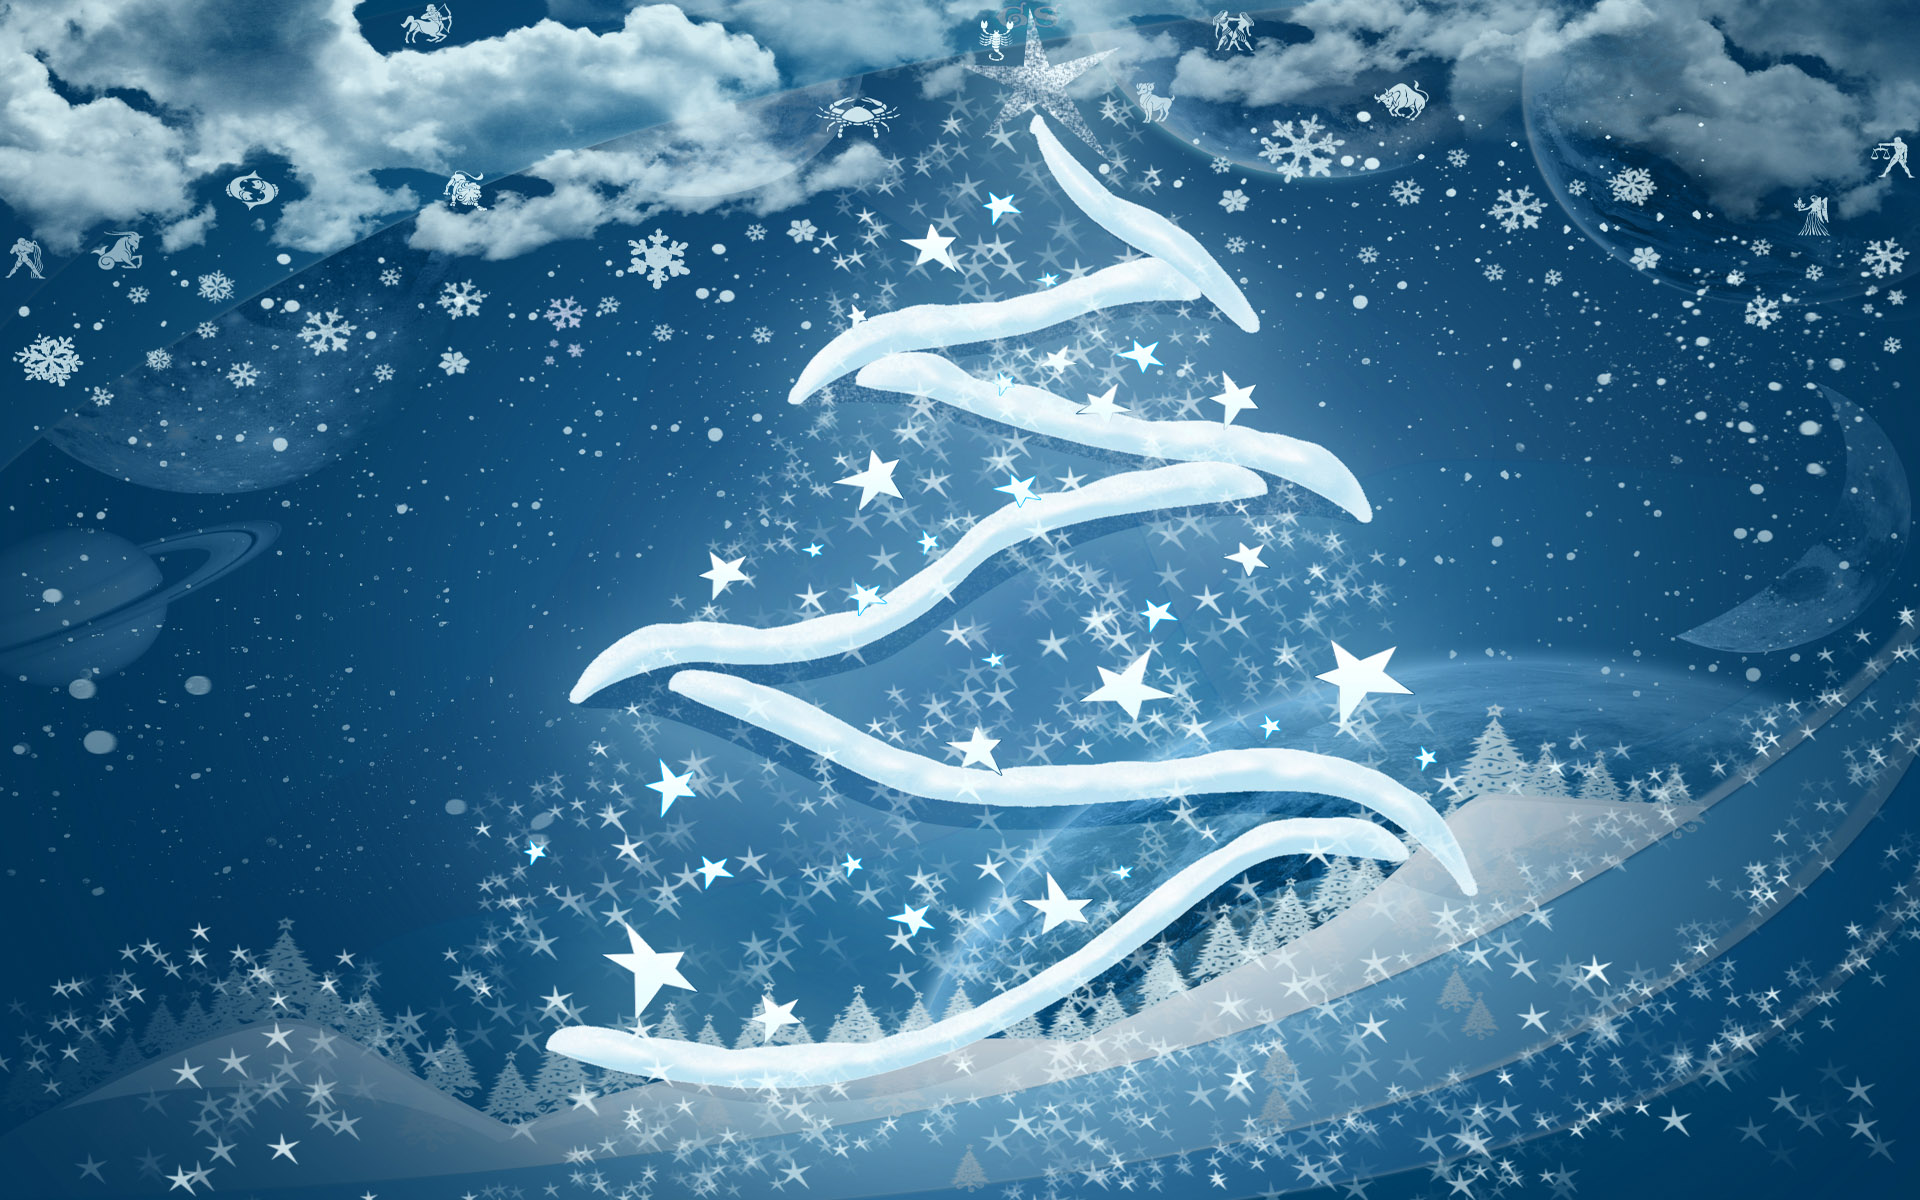 Christmas Desktop Themes Pictures Wallpapers